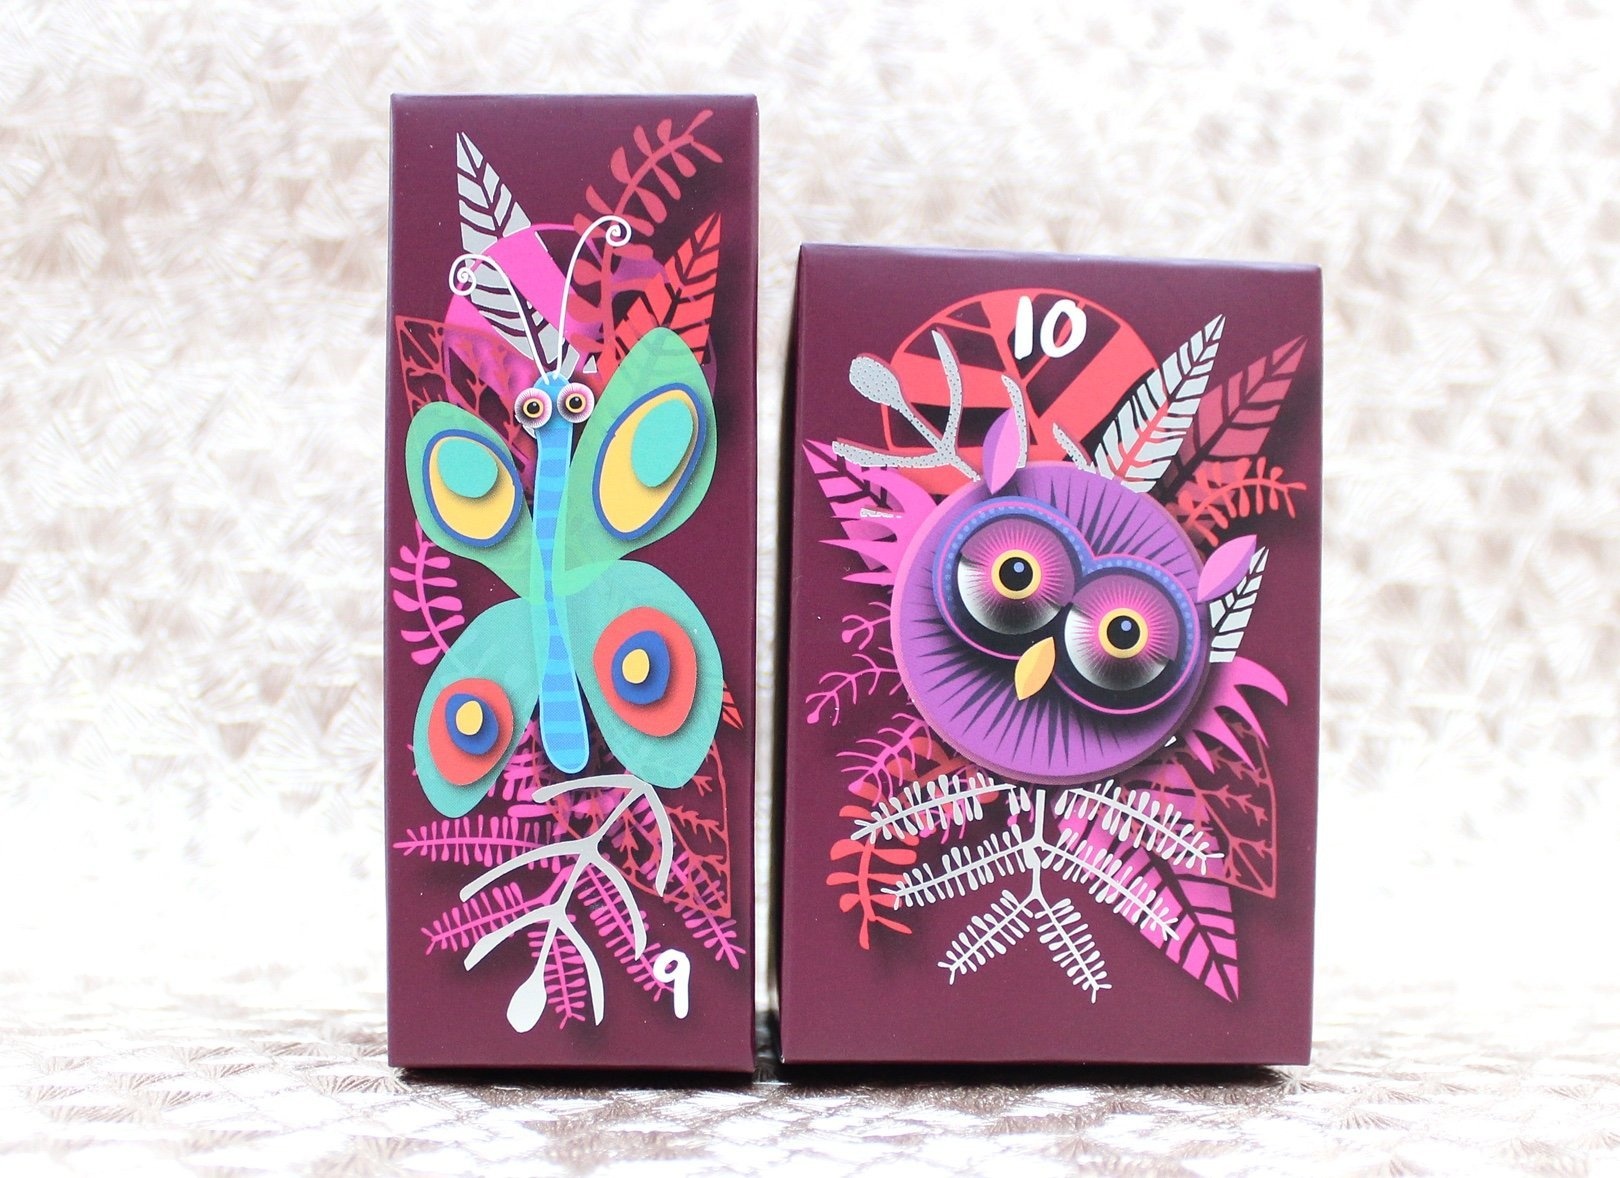 The Body Shop 25 Days of Enchanted Deluxe Advent Calendar • Days 9 - 10